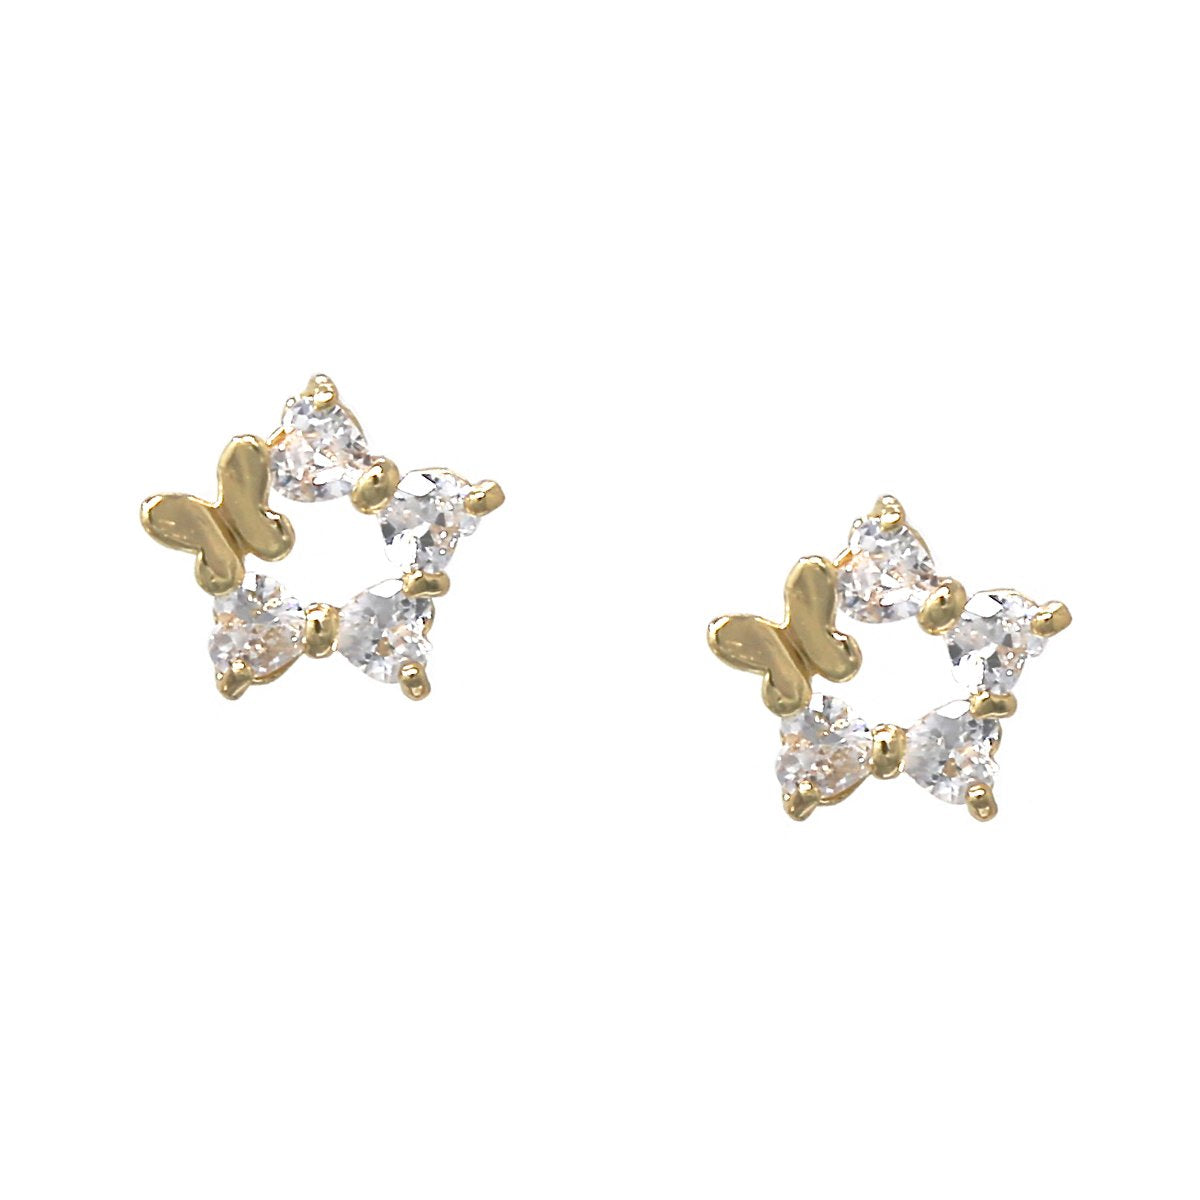 BITZ BUTTERFLY WITH STAR SHAPE CUBIC ZIRCONIA PAVE STUD EARRINGS